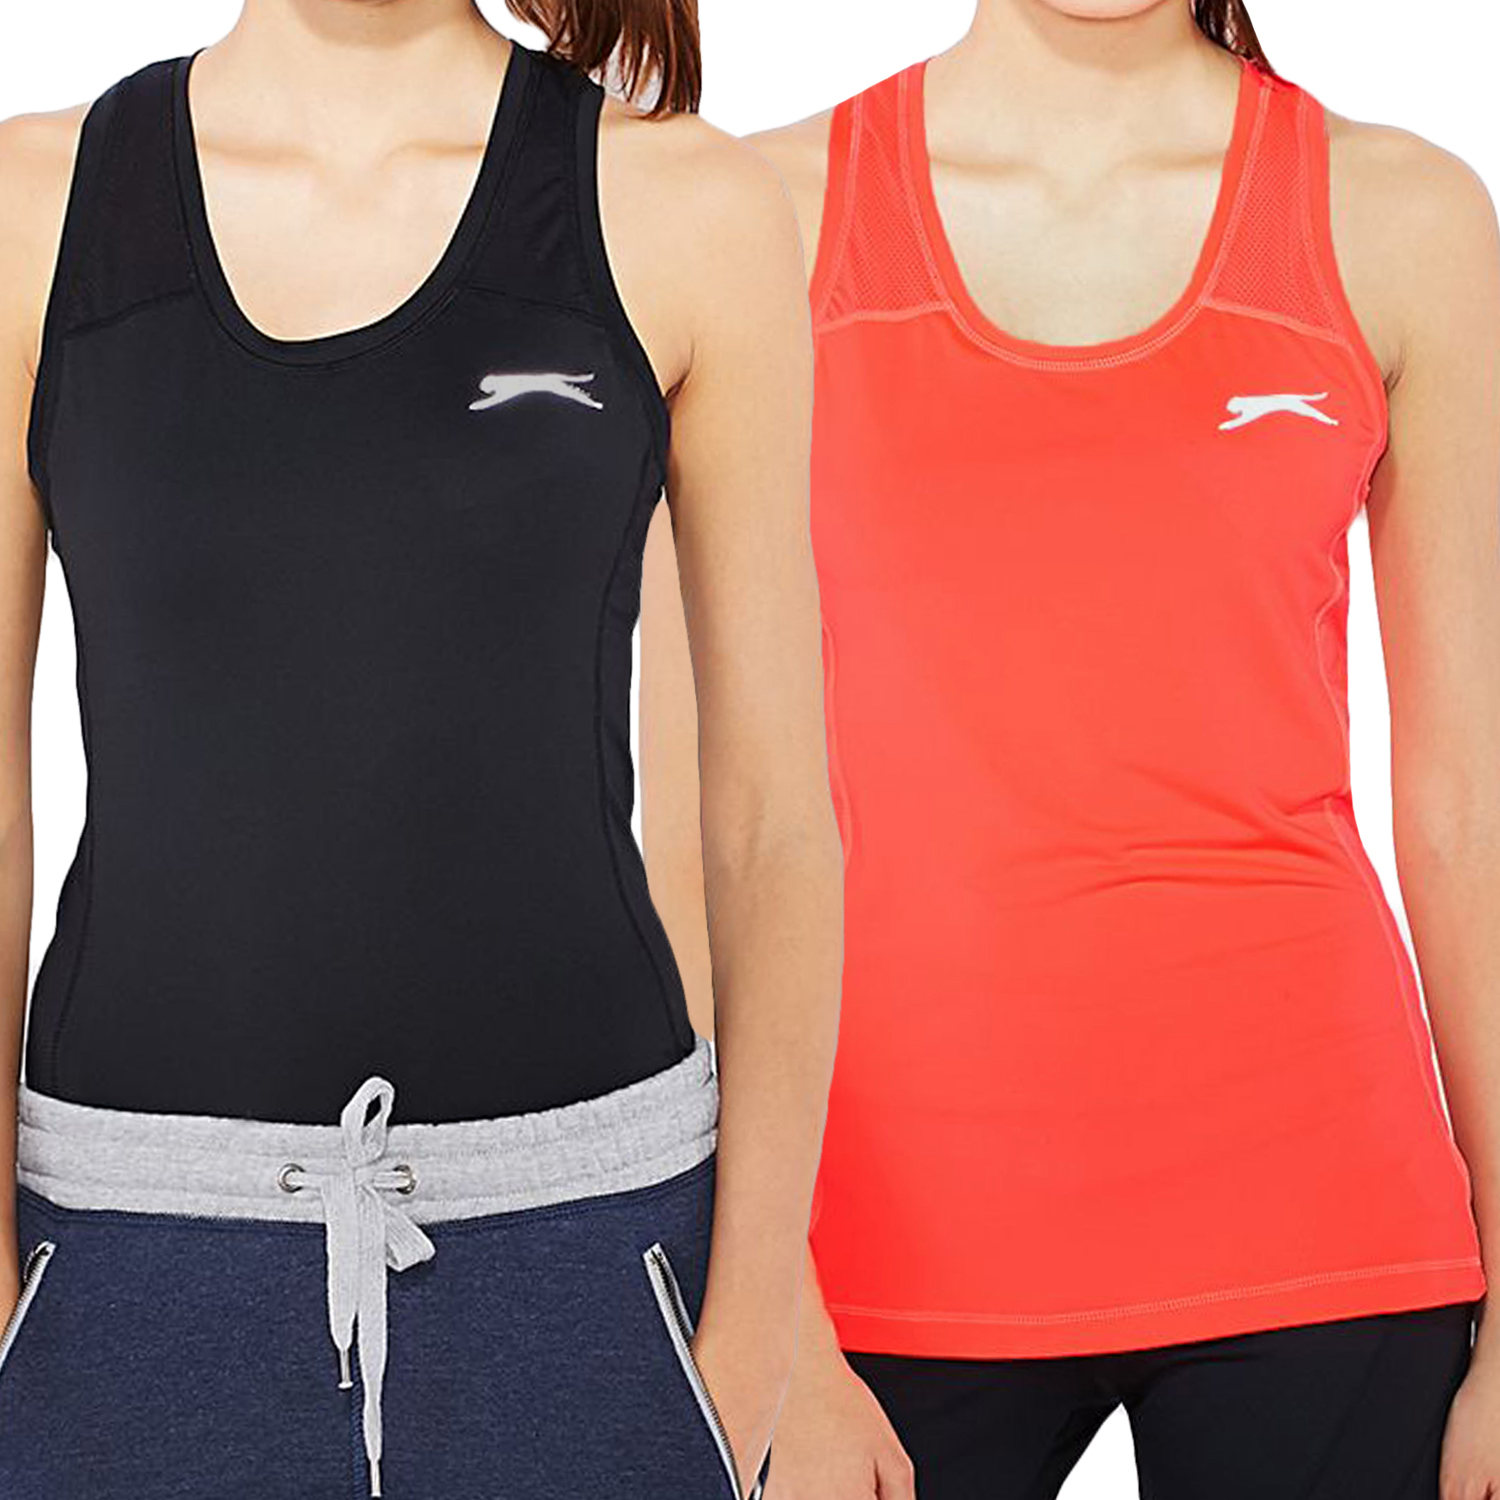 Shop for Men's Running Vests at REI - FREE SHIPPING With $50 minimum purchase. Top quality, great selection and expert advice you can trust. % Satisfaction Guarantee. Shop for Men's Running Vests at REI - FREE SHIPPING With $50 minimum purchase. Top quality, great selection and expert advice you can trust. % Satisfaction Guarantee.